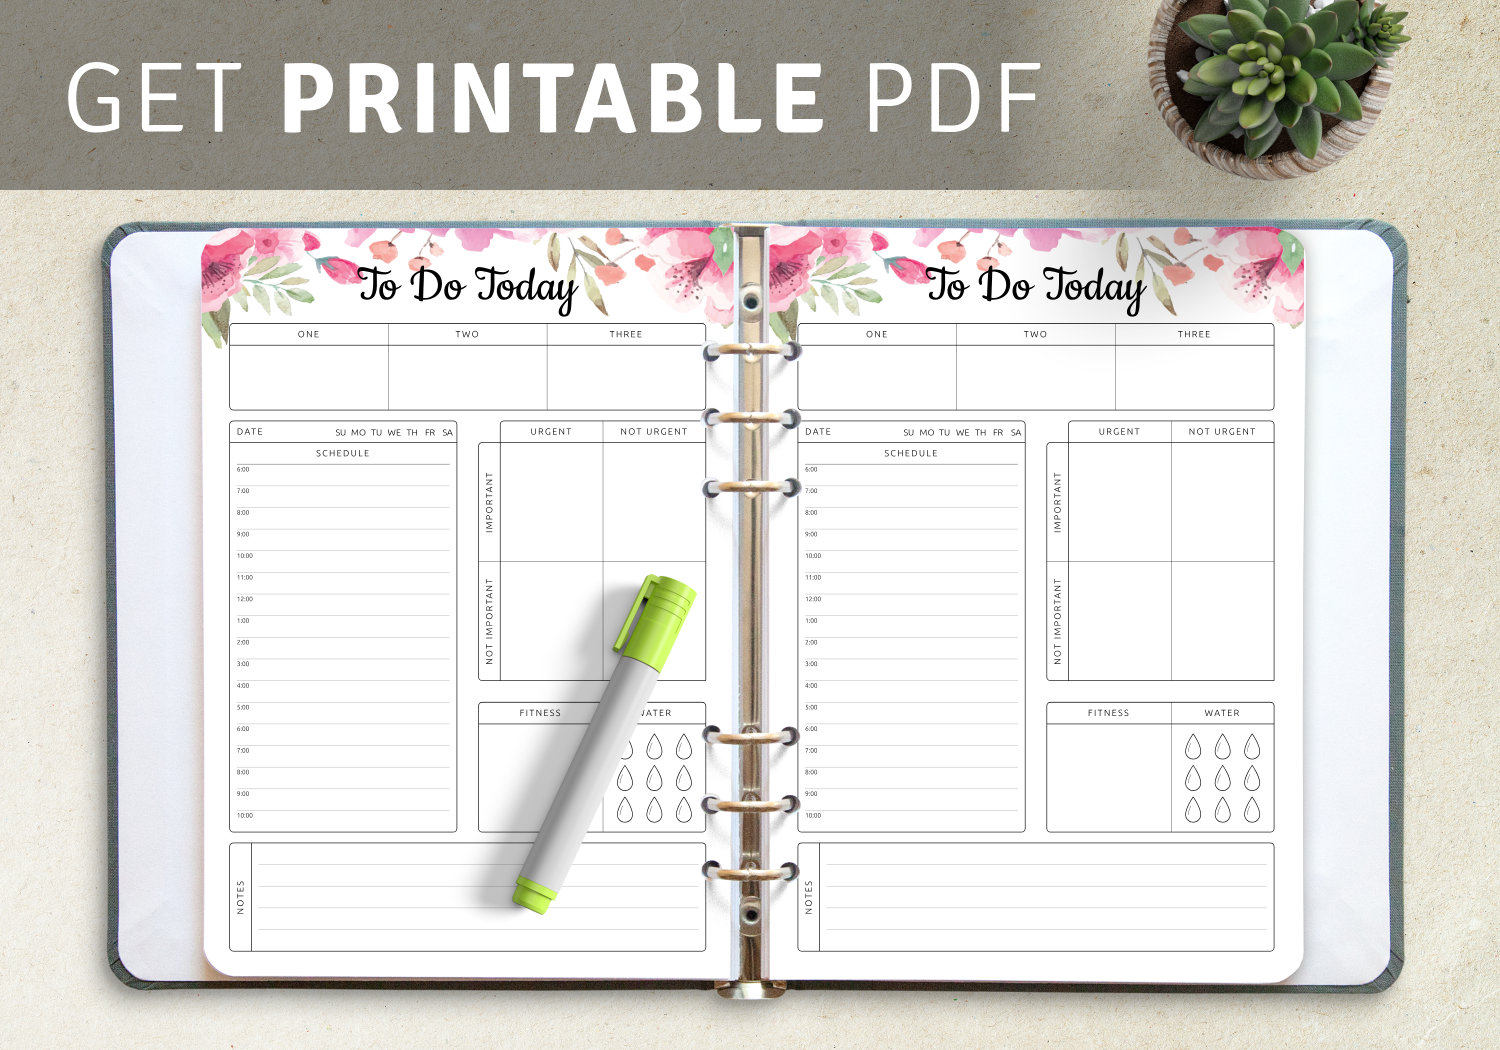 Printable job task list templates